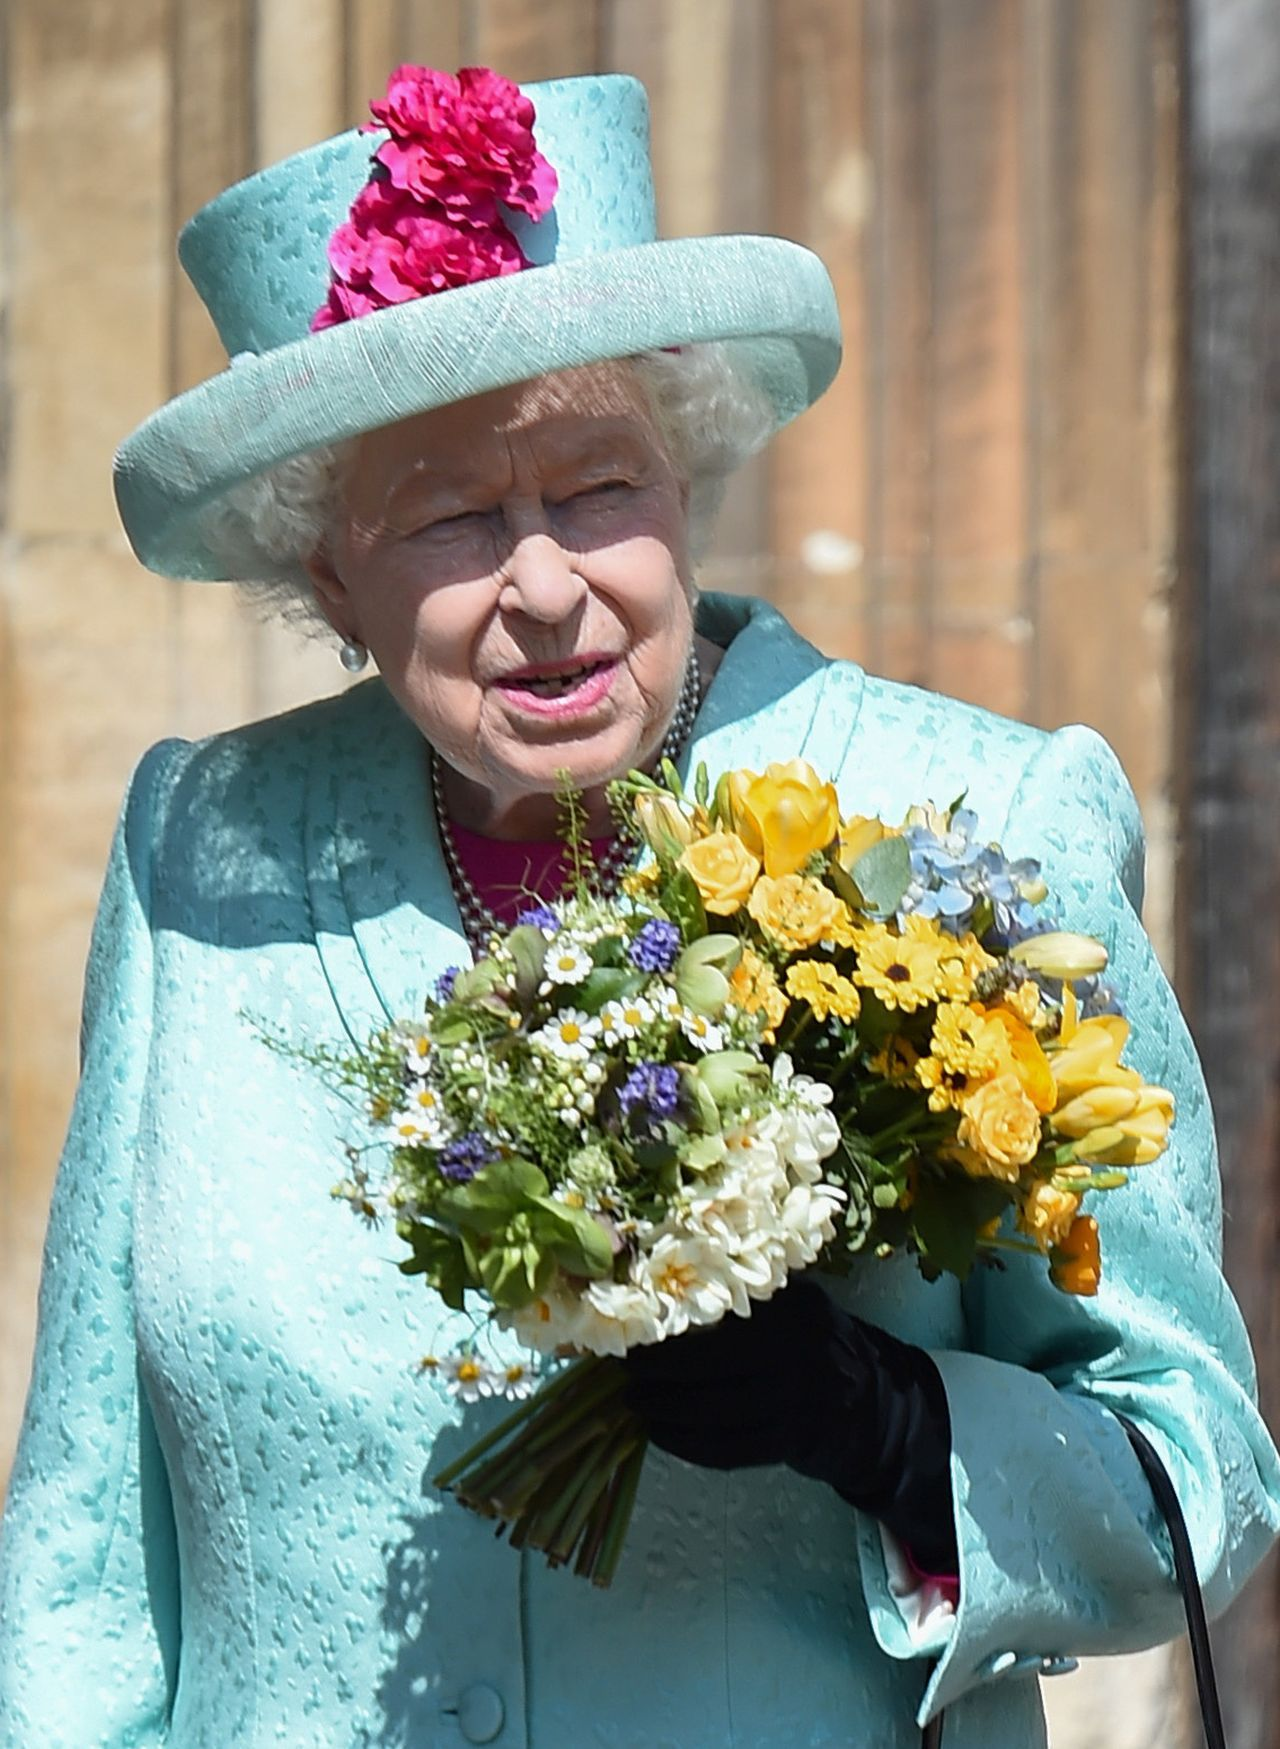 Britain's Queen Elizabeth II arrives at the Easter Mattins Service at St. George's Chapel, at Windsor Castle